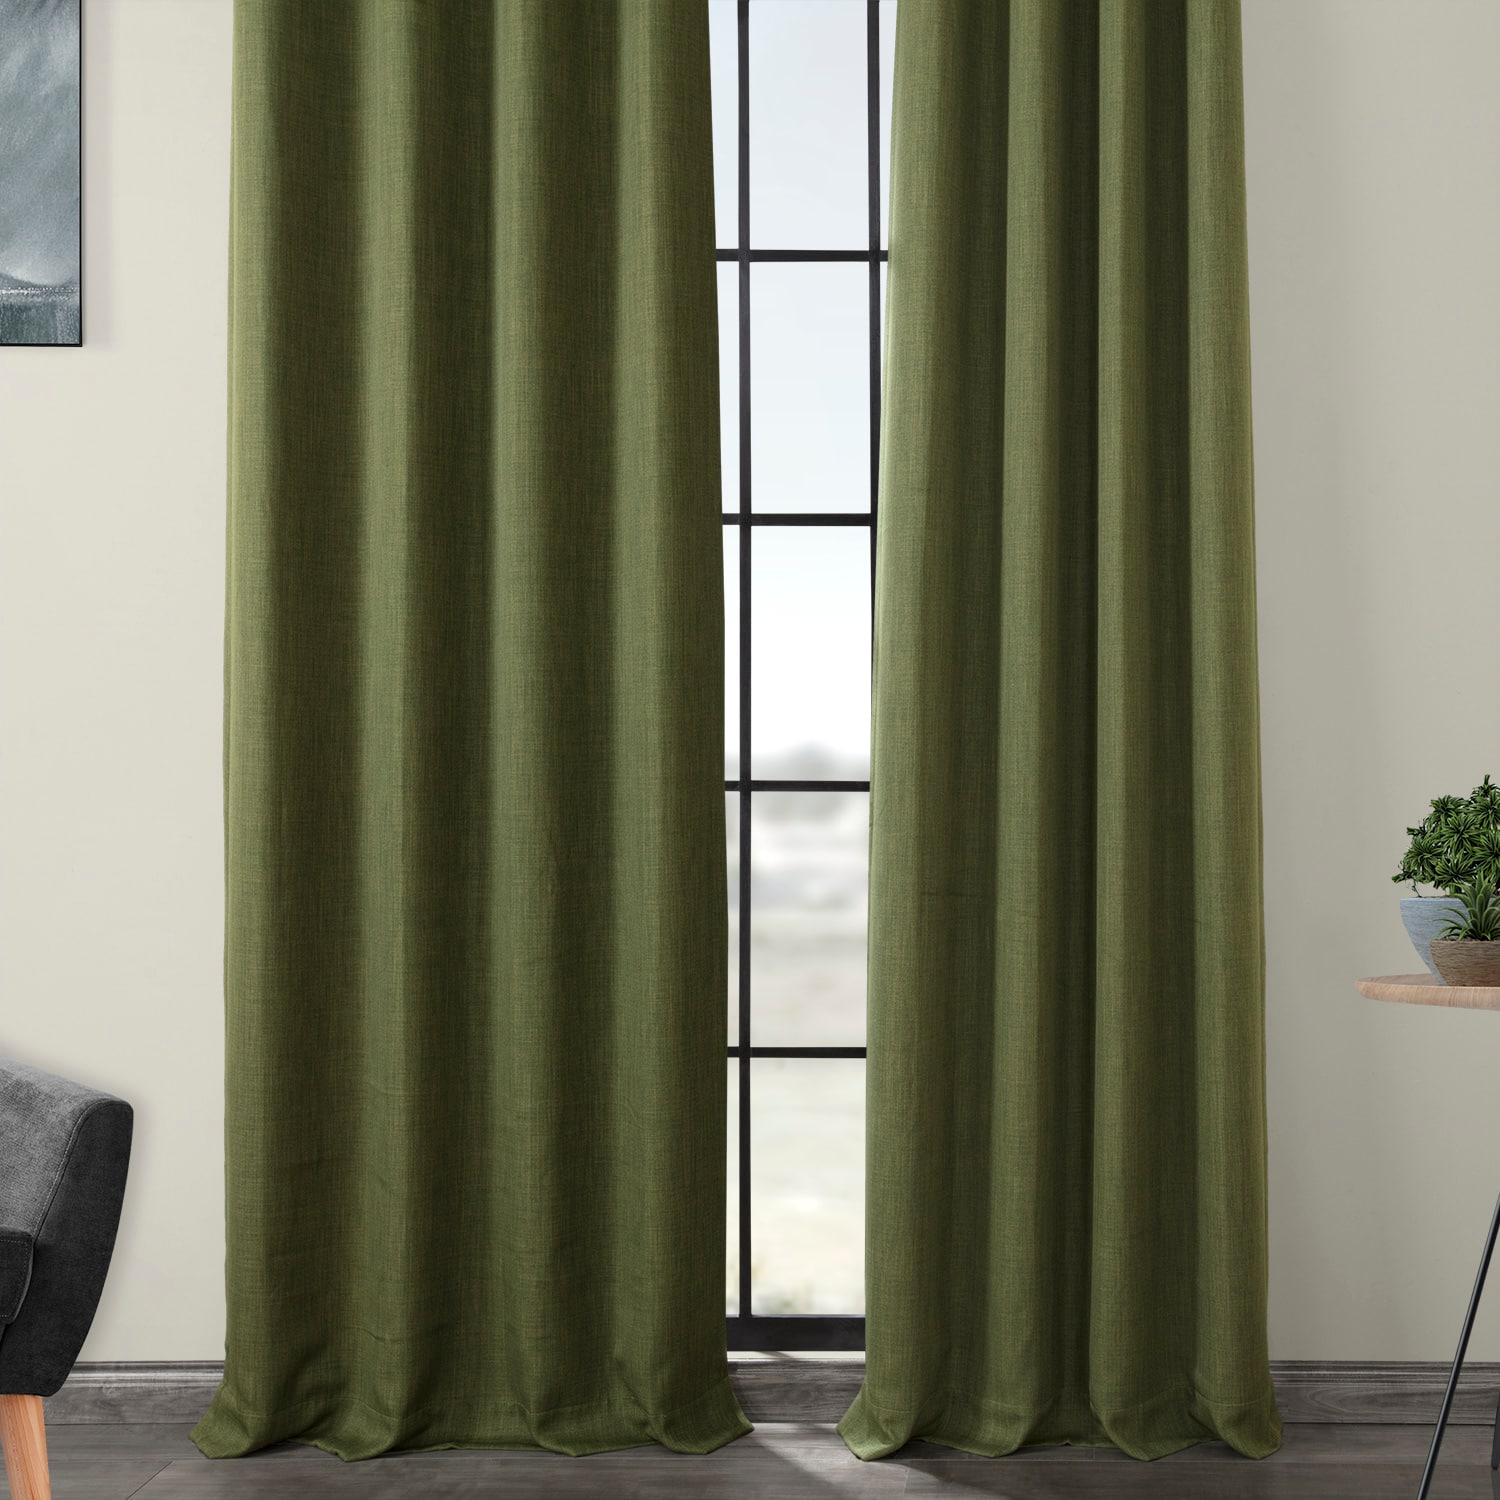 Tuscany Green Faux Linen Grommet Blackout Room Darkening Curtain